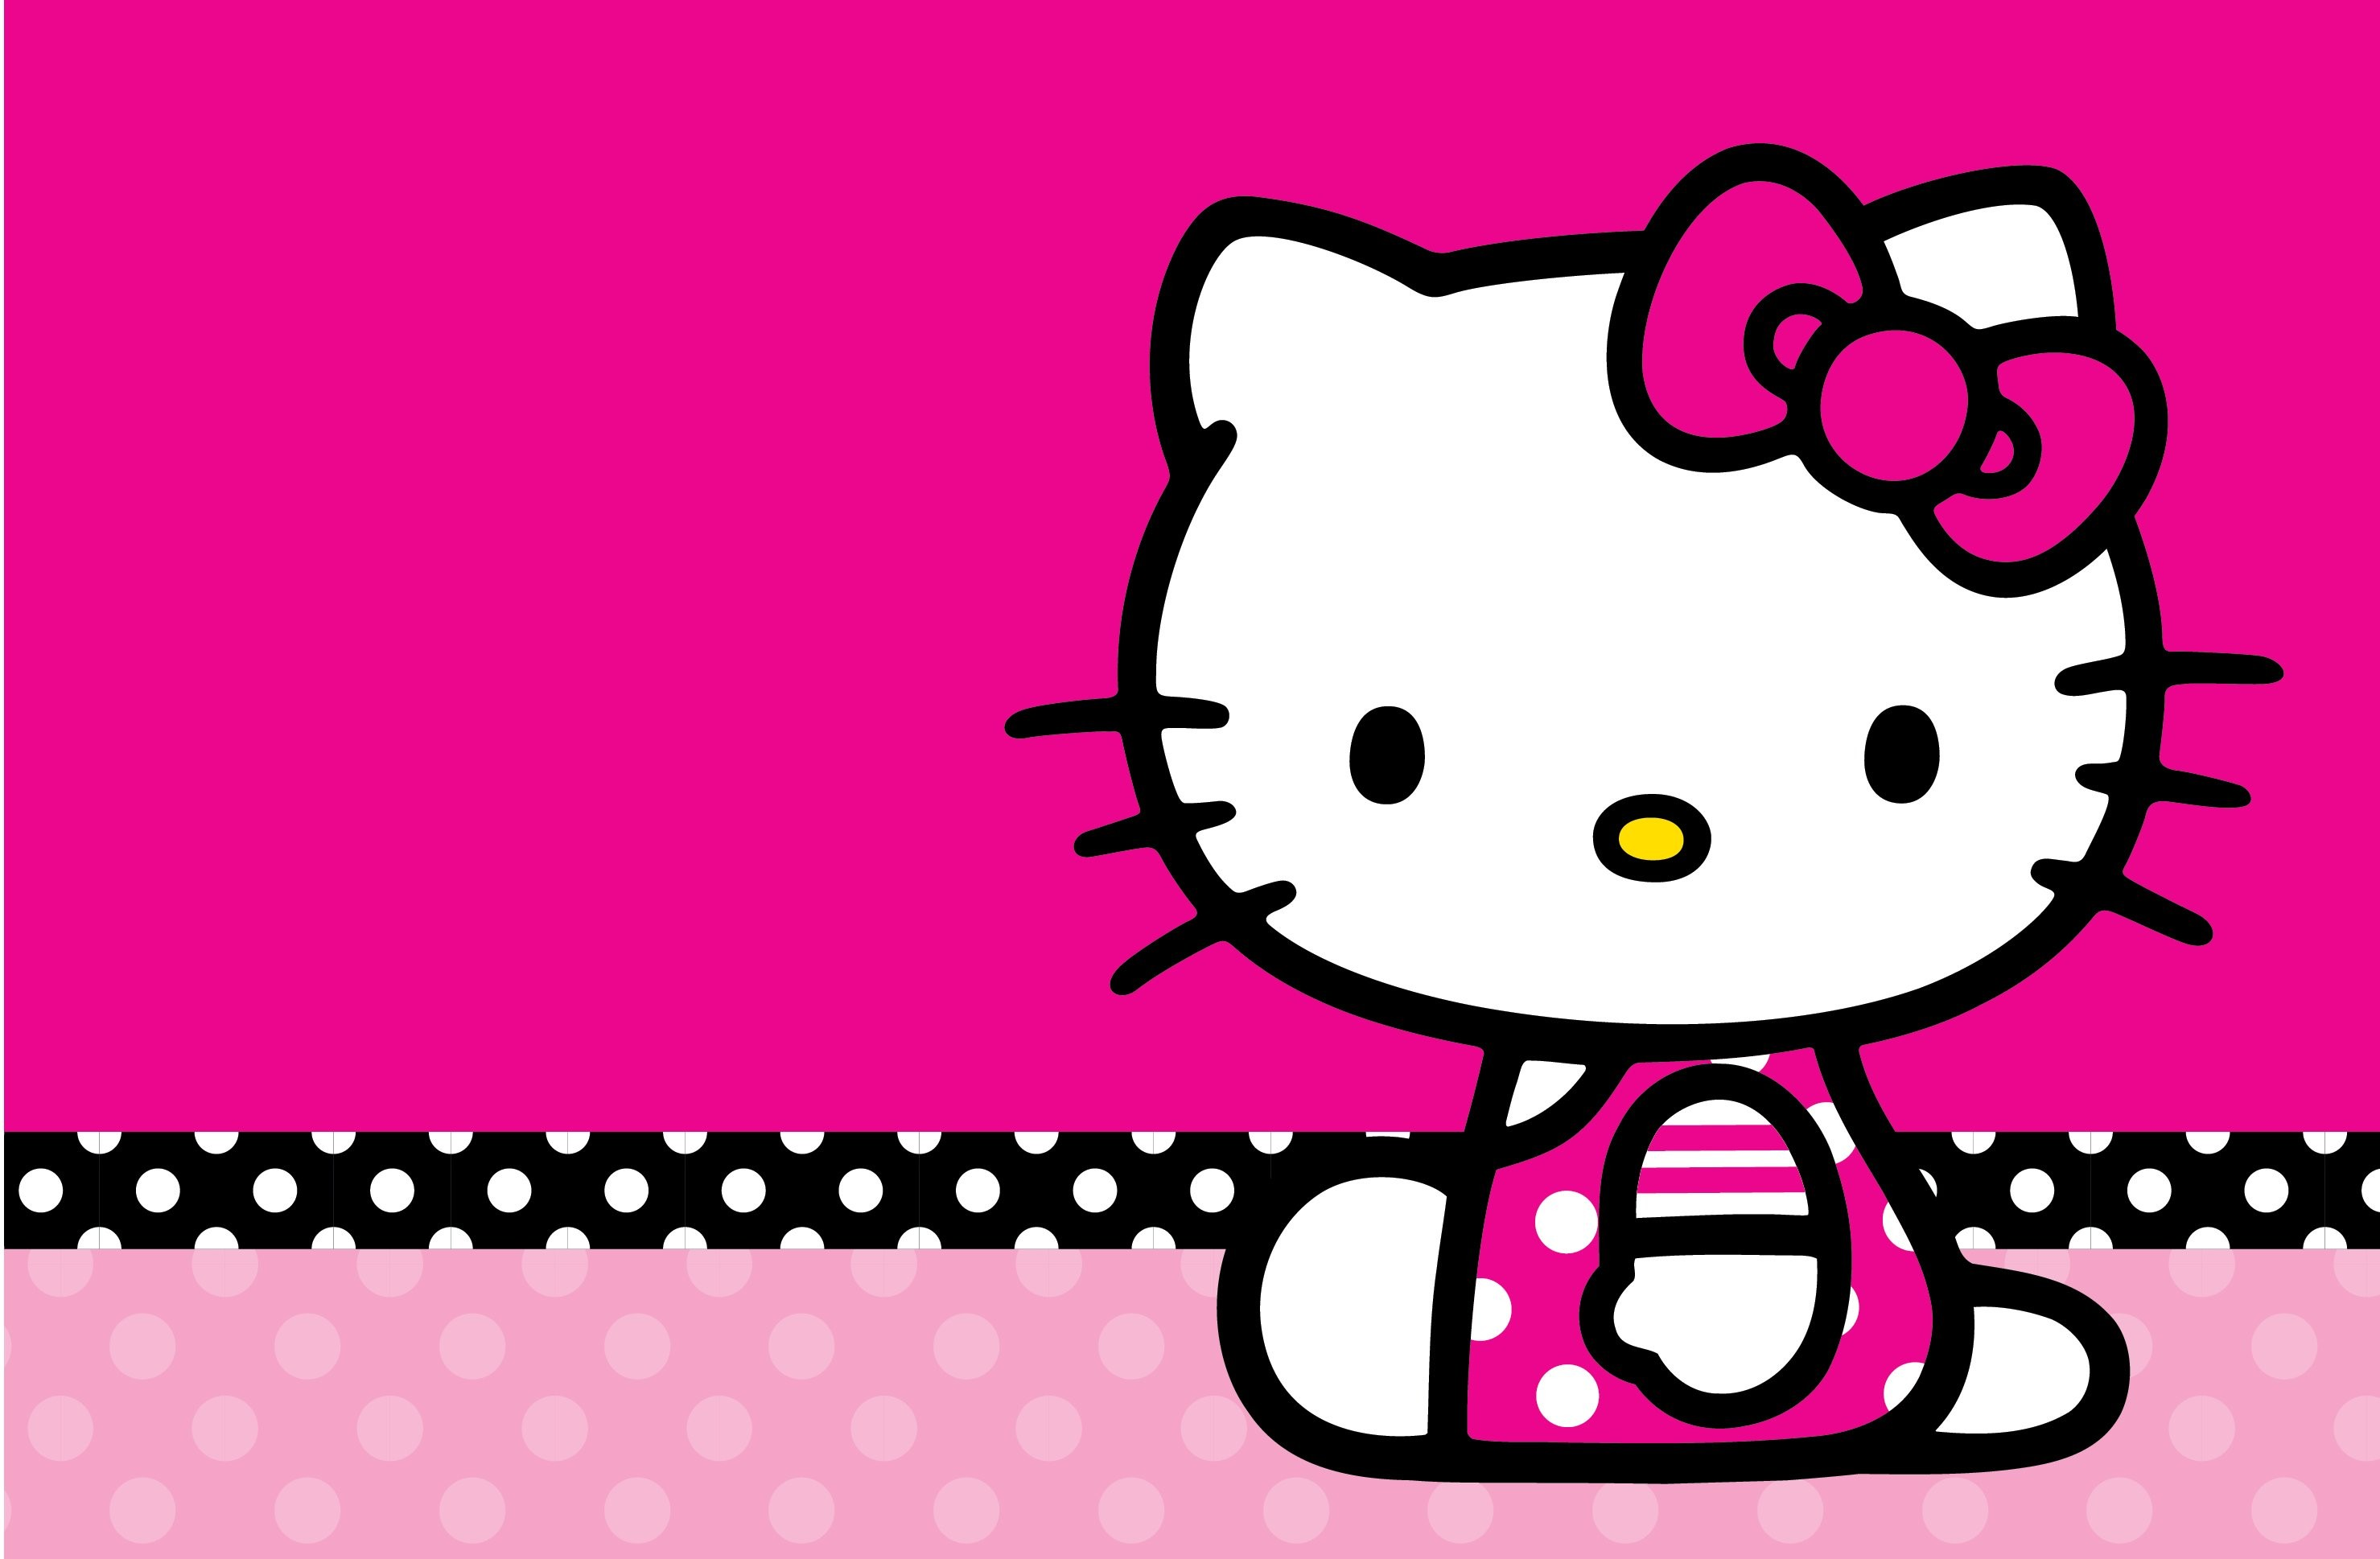 Download Wallpaper Hello Kitty High Definition - 968474-cool-hello-kitty-wallpaper-pictures-2958x1938  Trends_396676.jpg